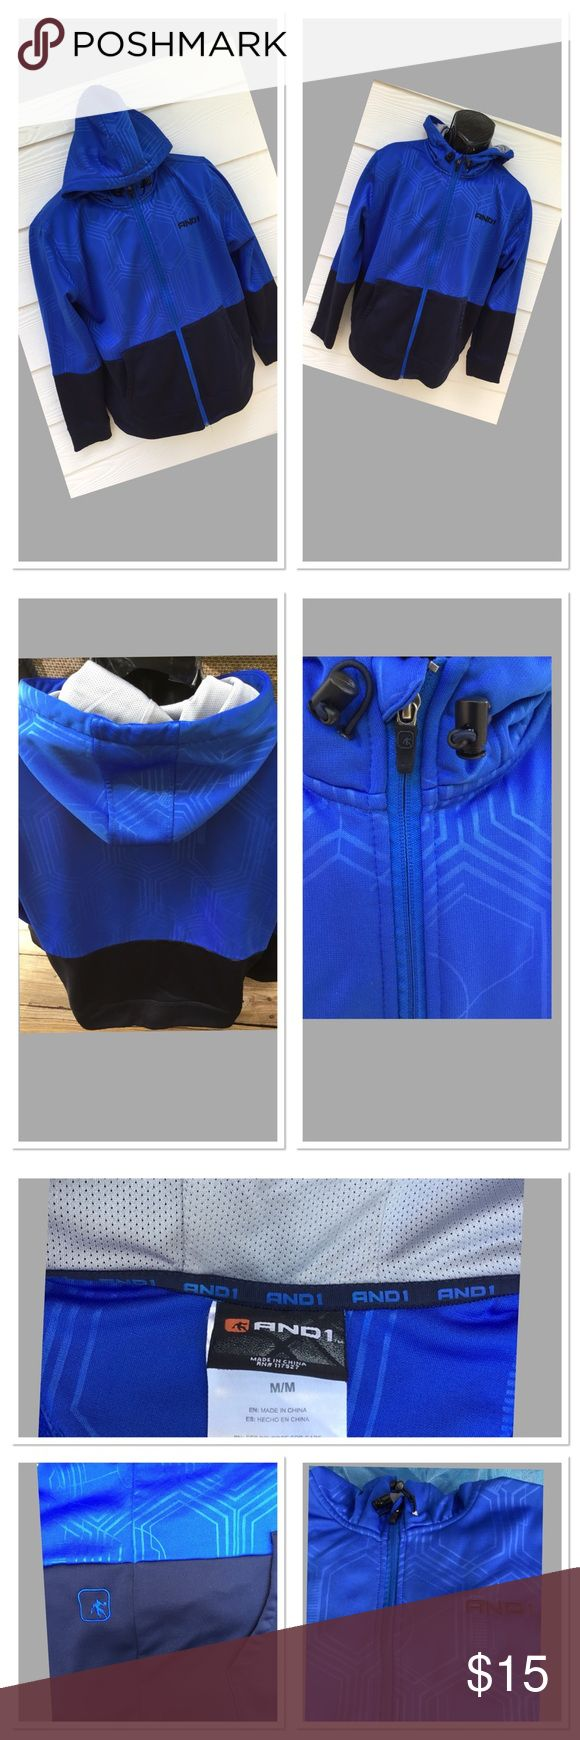 AND 1 Men's zip up Hoodie with, two side pockets. AND 1 Men's two-toned Blue and Black; zip up Hoodie with Logo Design, two side pockets. Lined hood, draw strings, brushed fleece interior and ribbed cuffs! Excellent condition, like new. AND 1 Shirts Sweatshirts & Hoodies